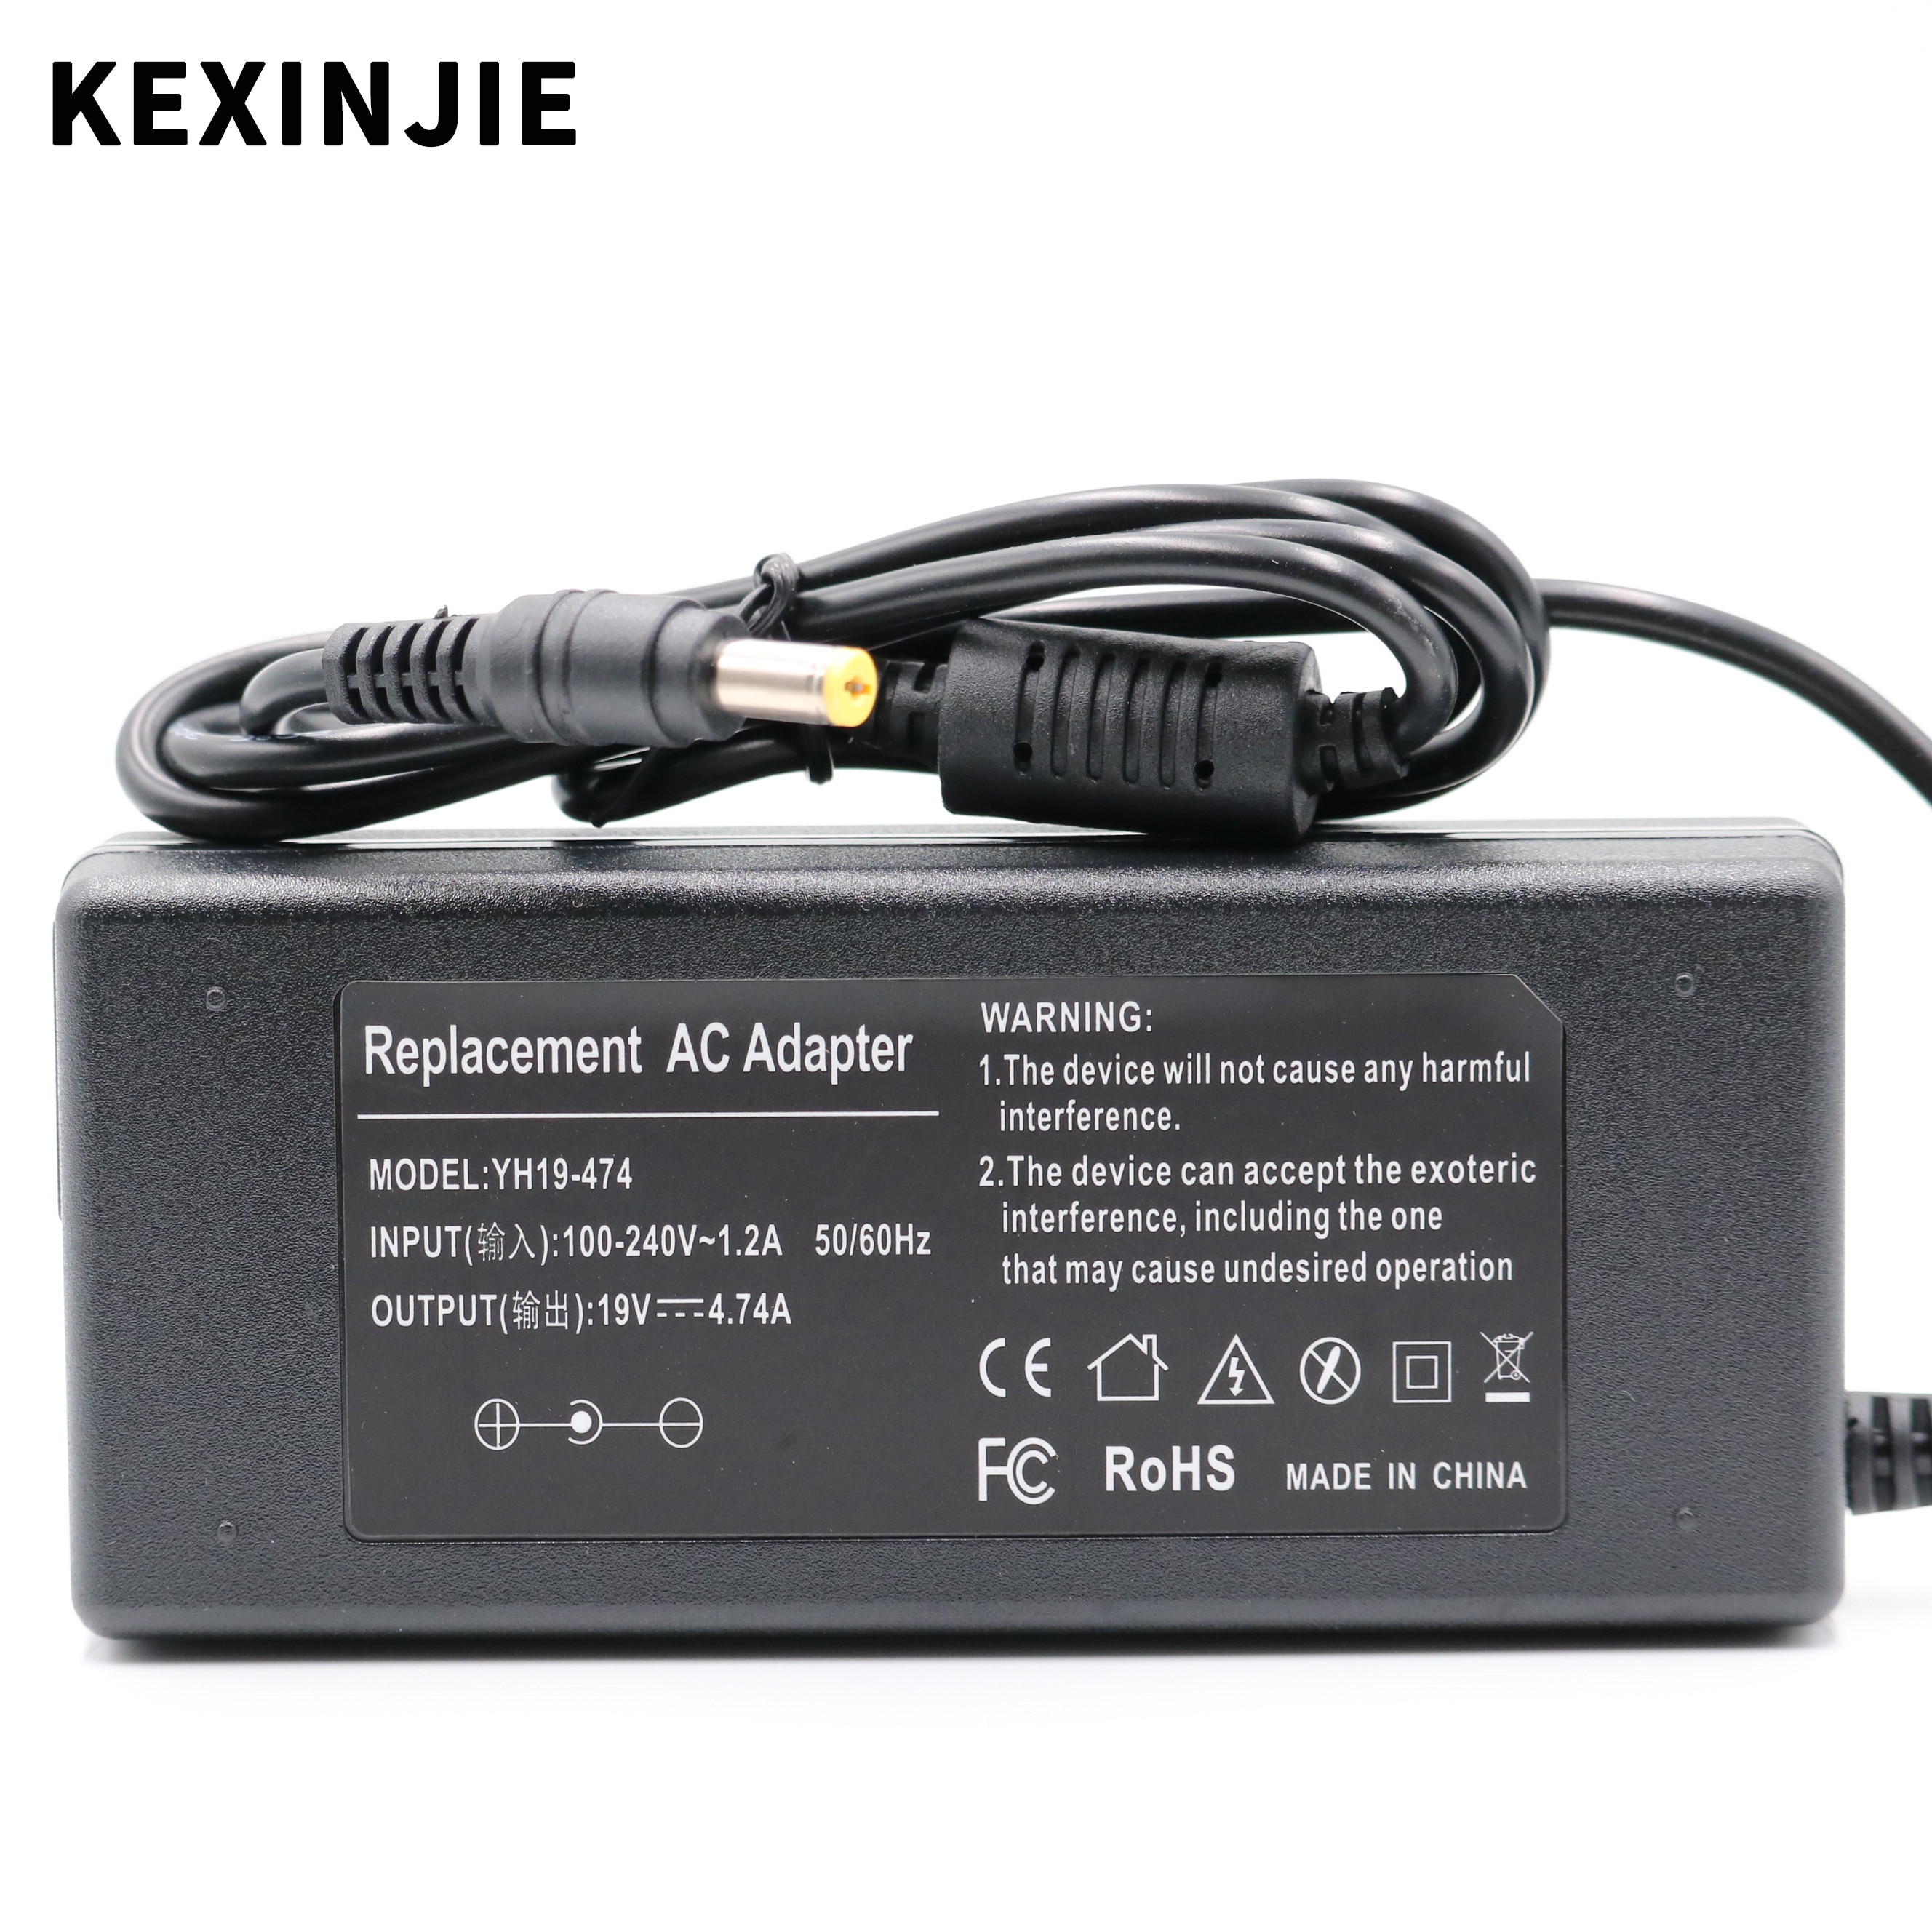 ac adapter charger power supply 19v 4 74a 5 5 3 0mm 90w for samsung laptop r453 r518 r410 r429 r439 r453 for notebook samsung 19V 4.74A AC Power 90W 19V4.74A Supply Notebook Adapter Charger For ASUS Laptop For Toshiba/HP Notbook DC plug 5.5*1.7mm